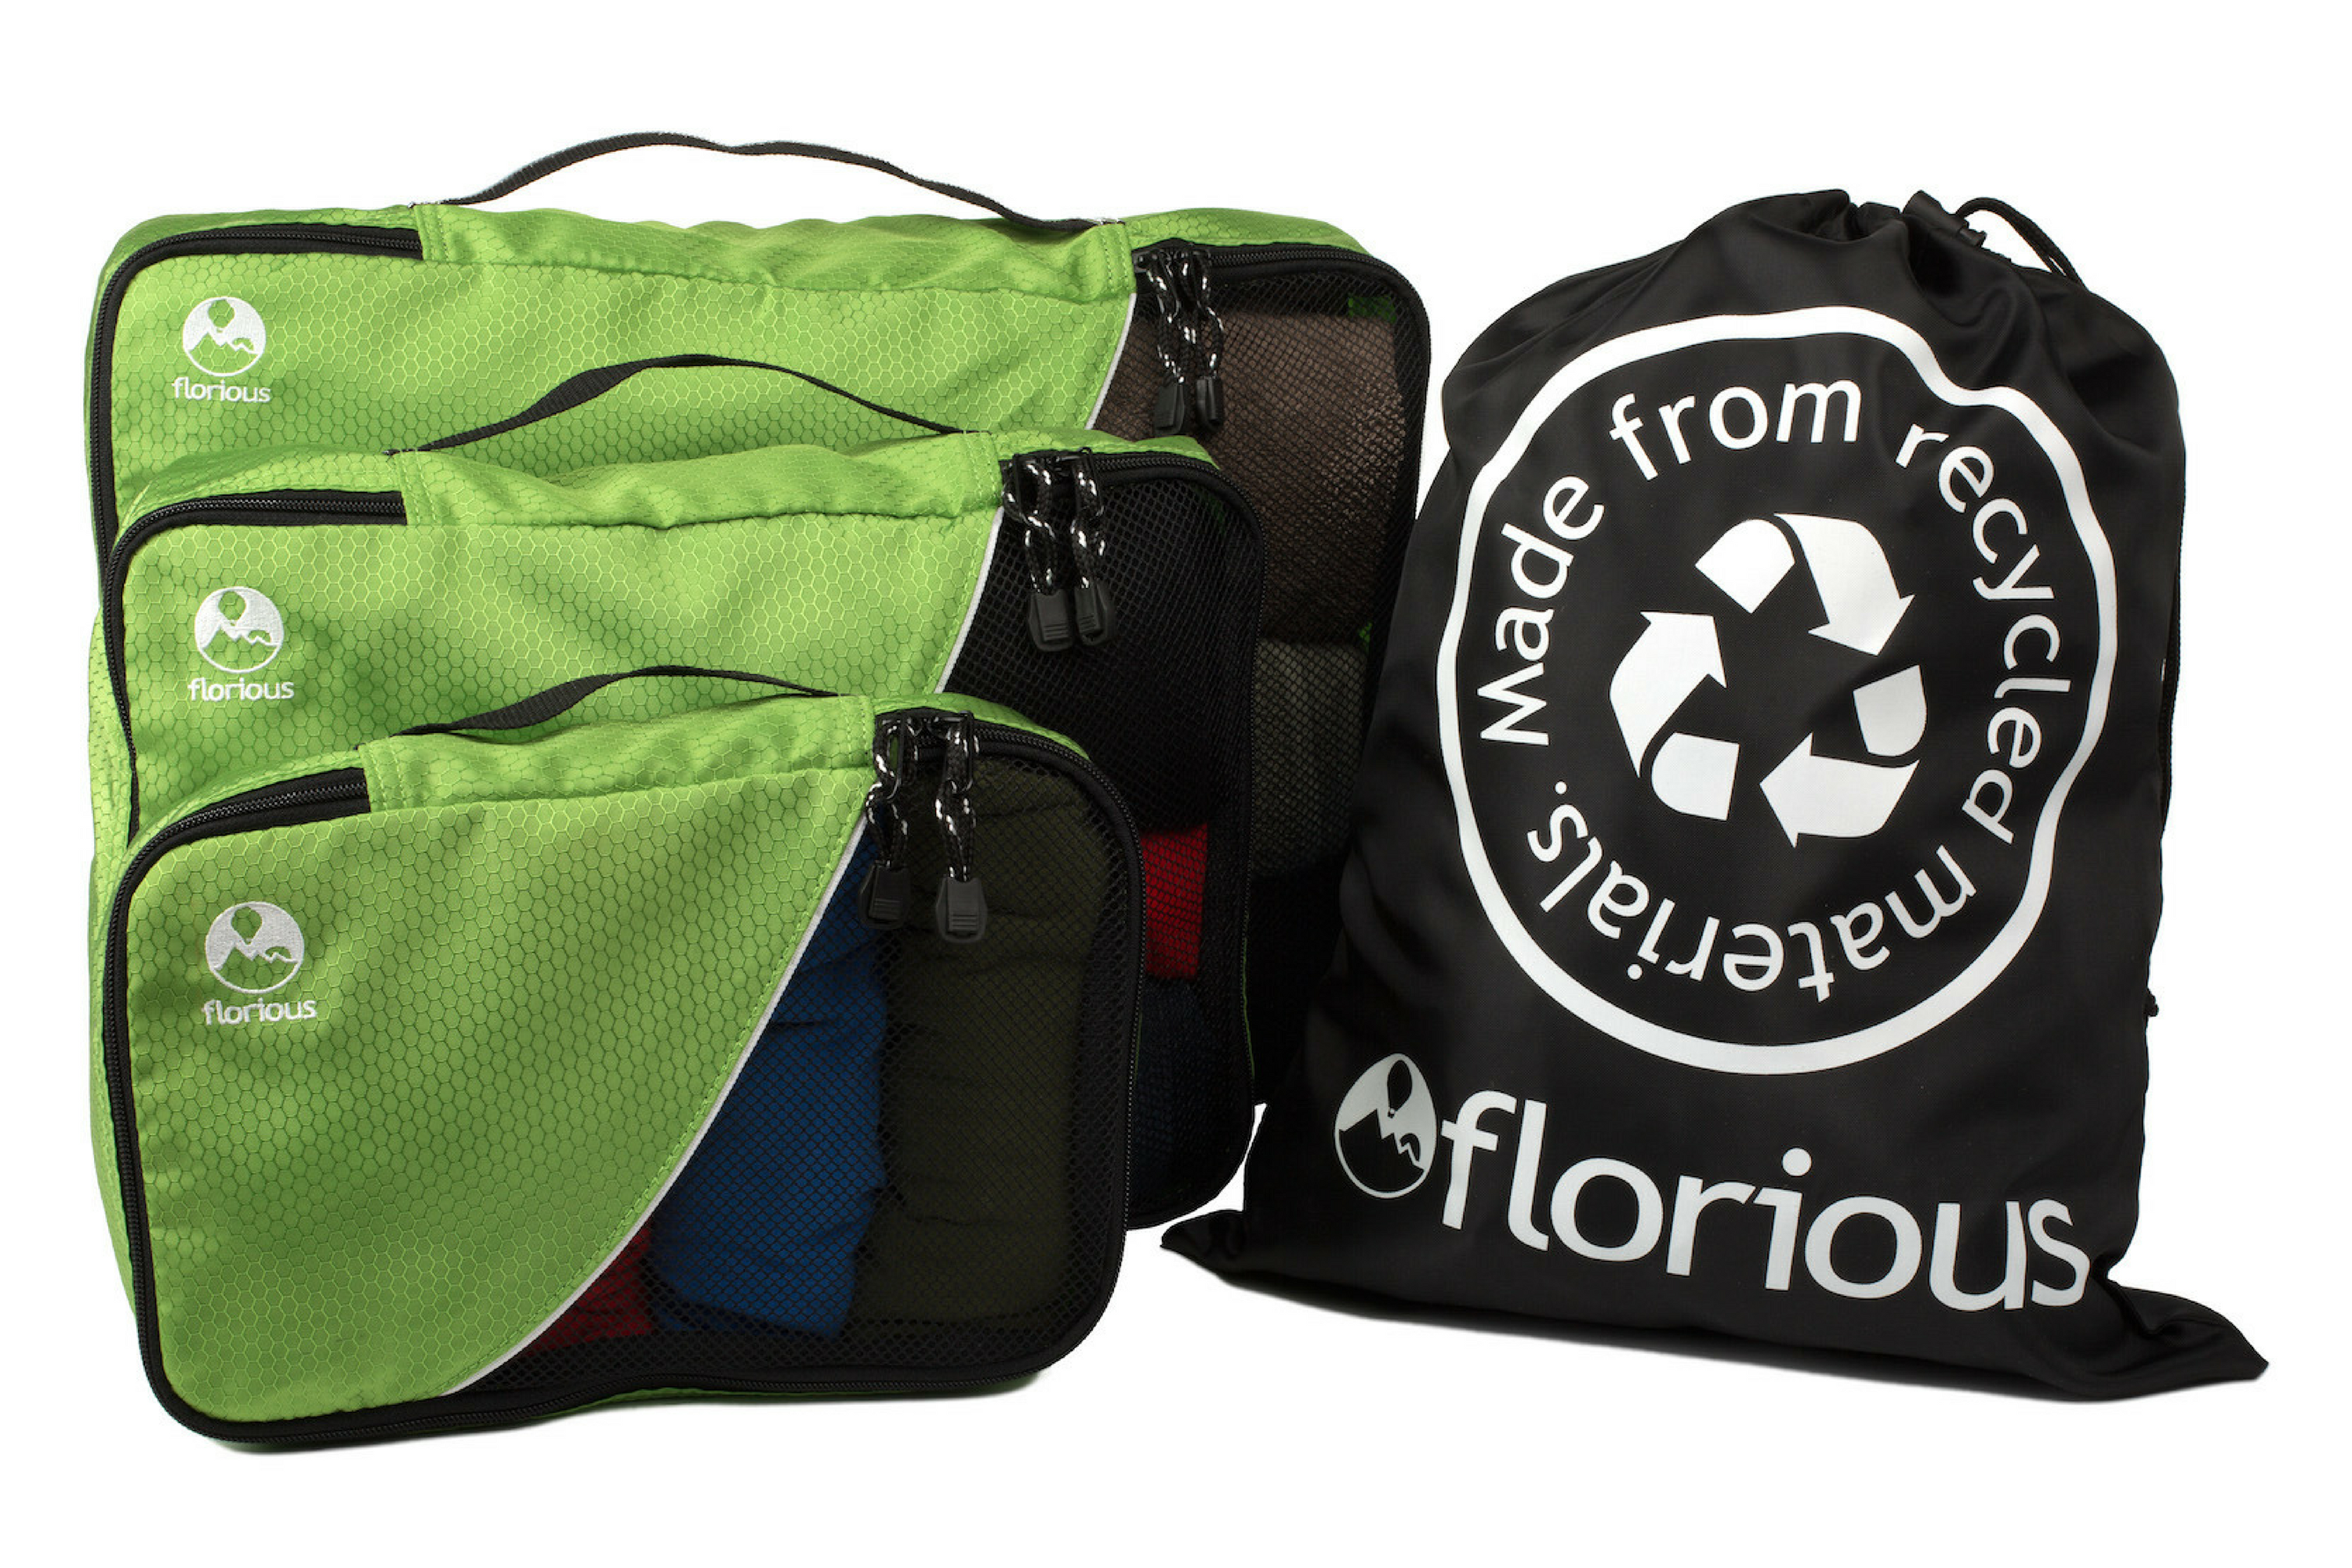 Florious Packing Cubes help you keep organized while traveling sustainably.